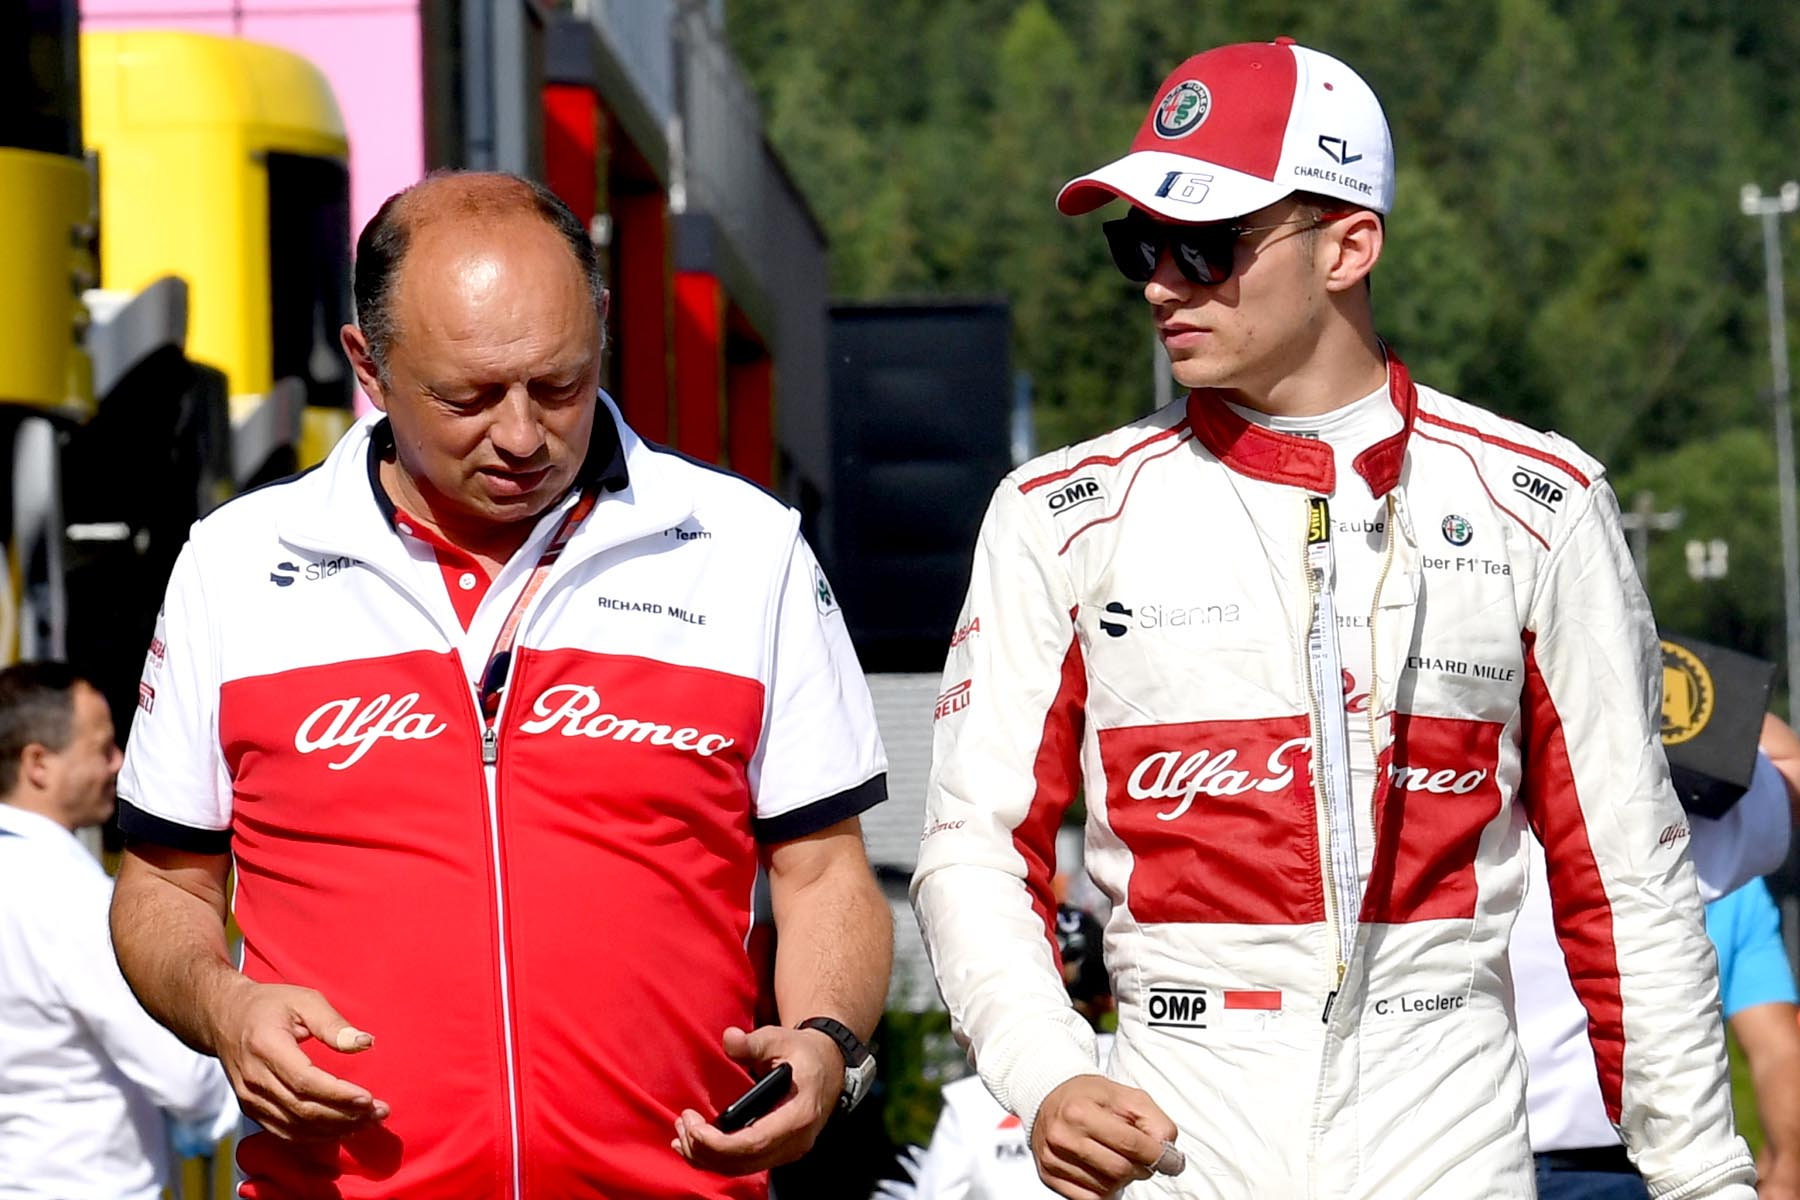 Charles Leclerc (right) talks with Sauber team principal Frederic Vasseur (left).